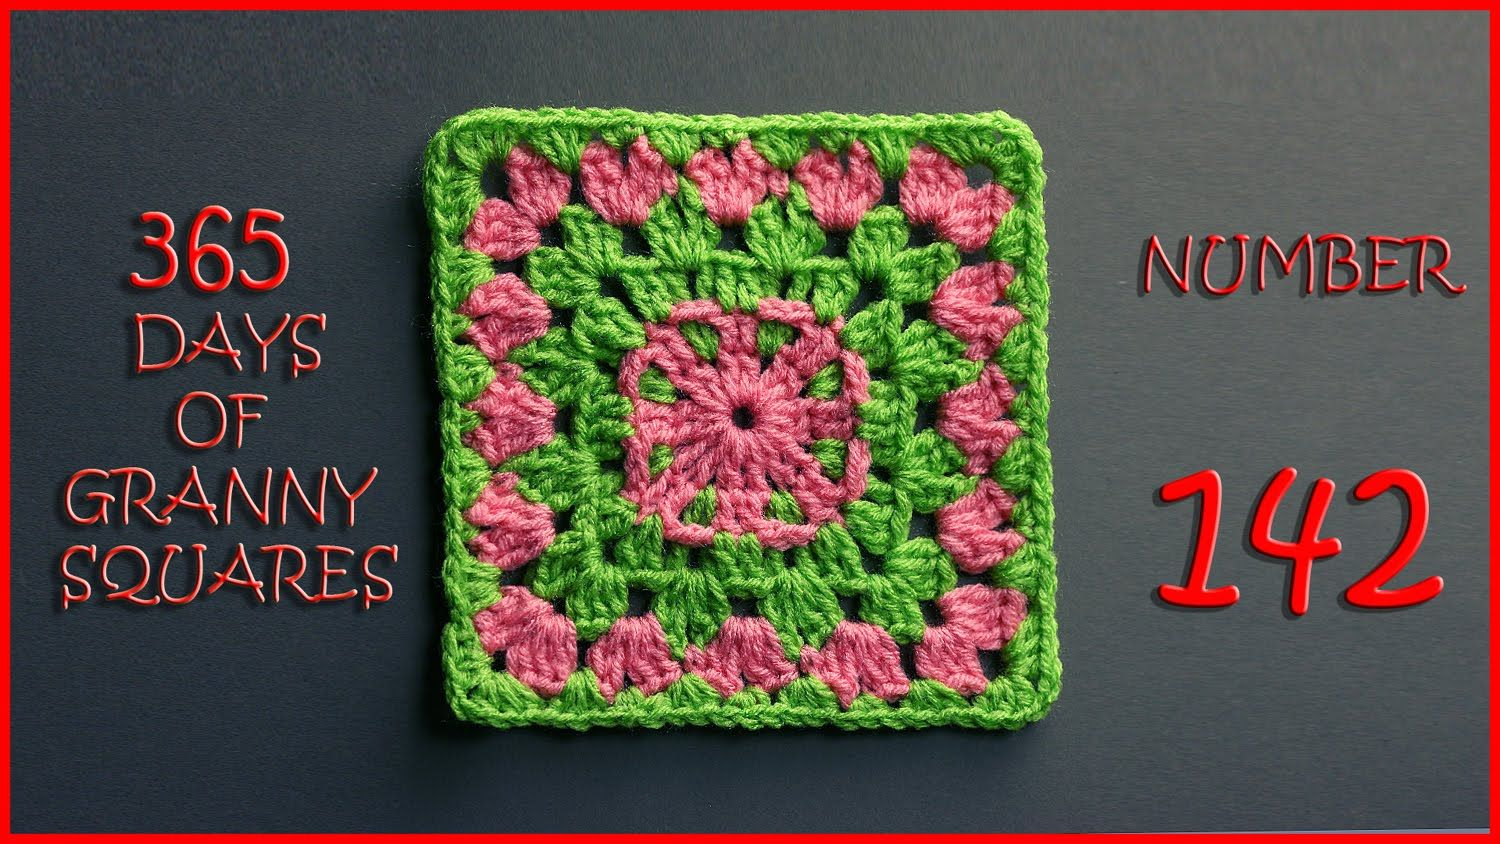 365 Days of Granny Squares Number 142 | crochet | Pinterest ...